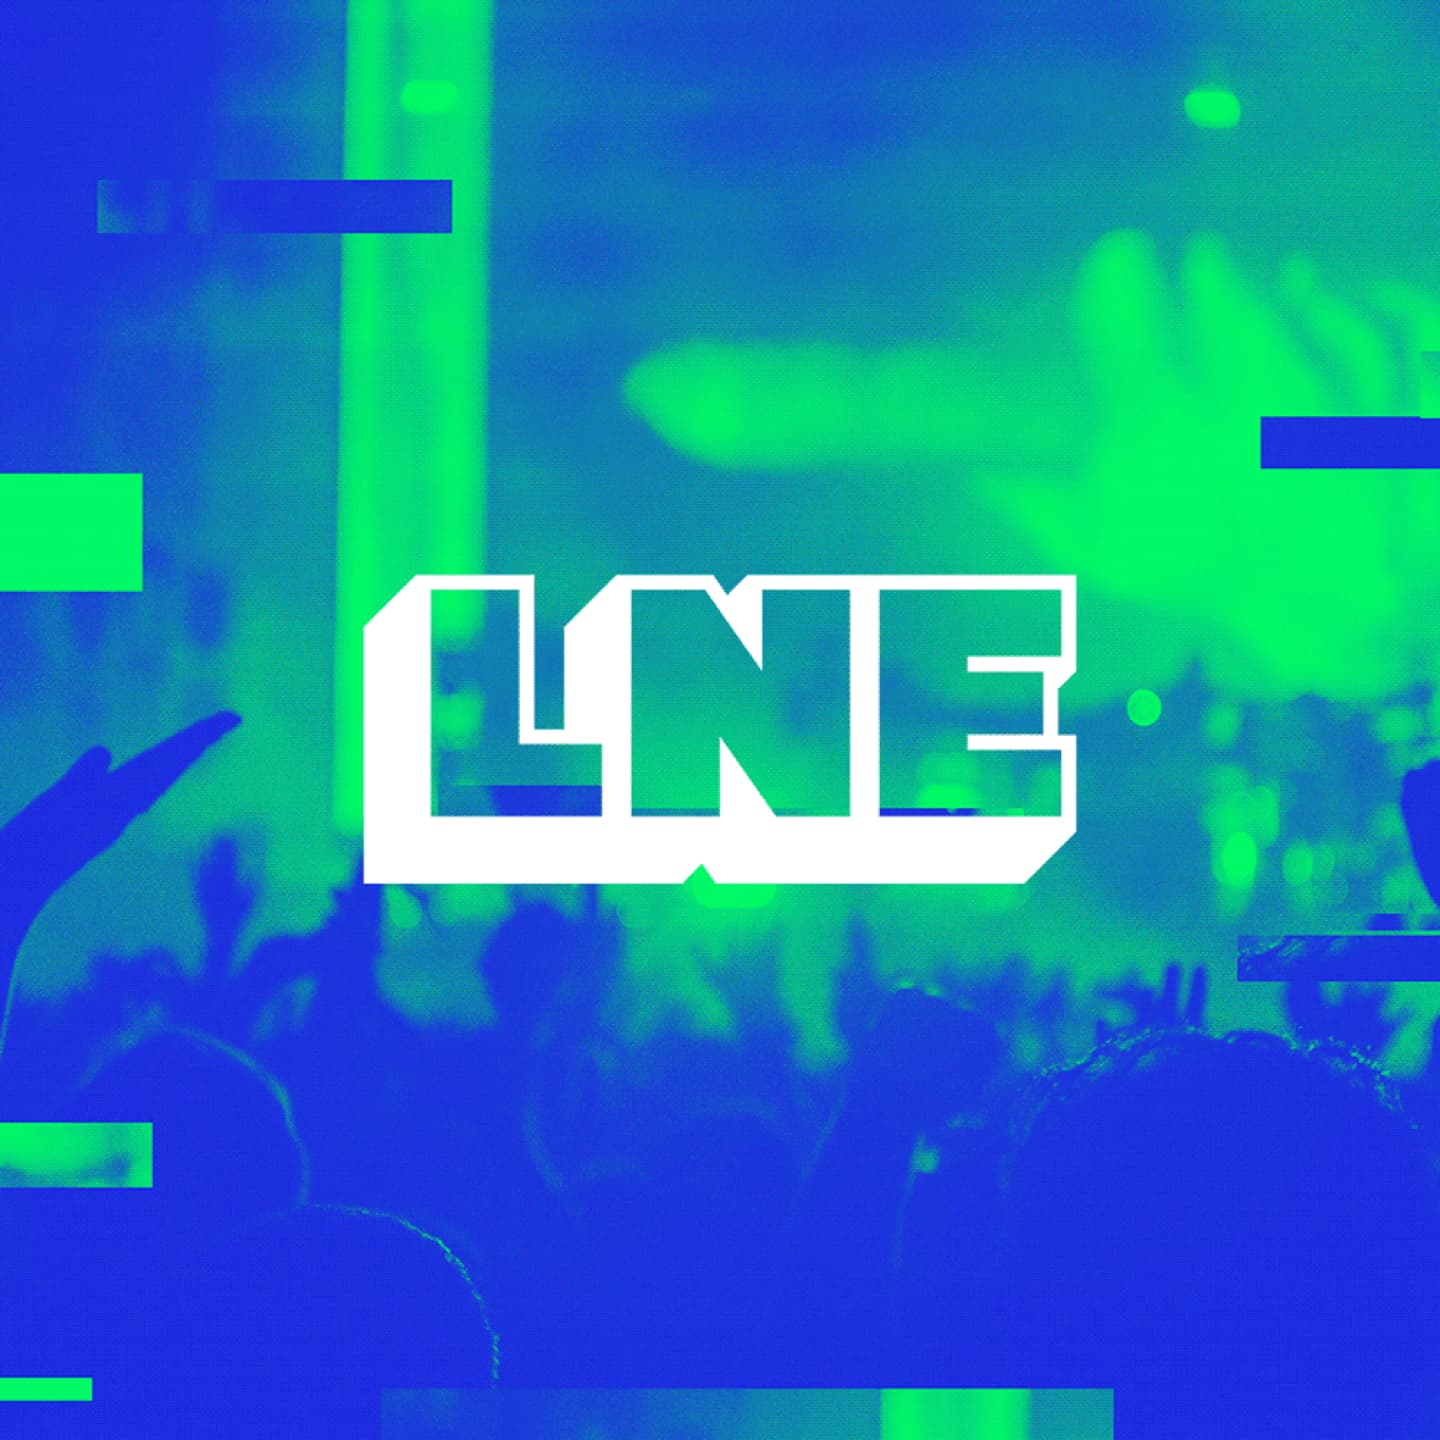 Last Night Events company logo on a photo of a crowd at a concert.